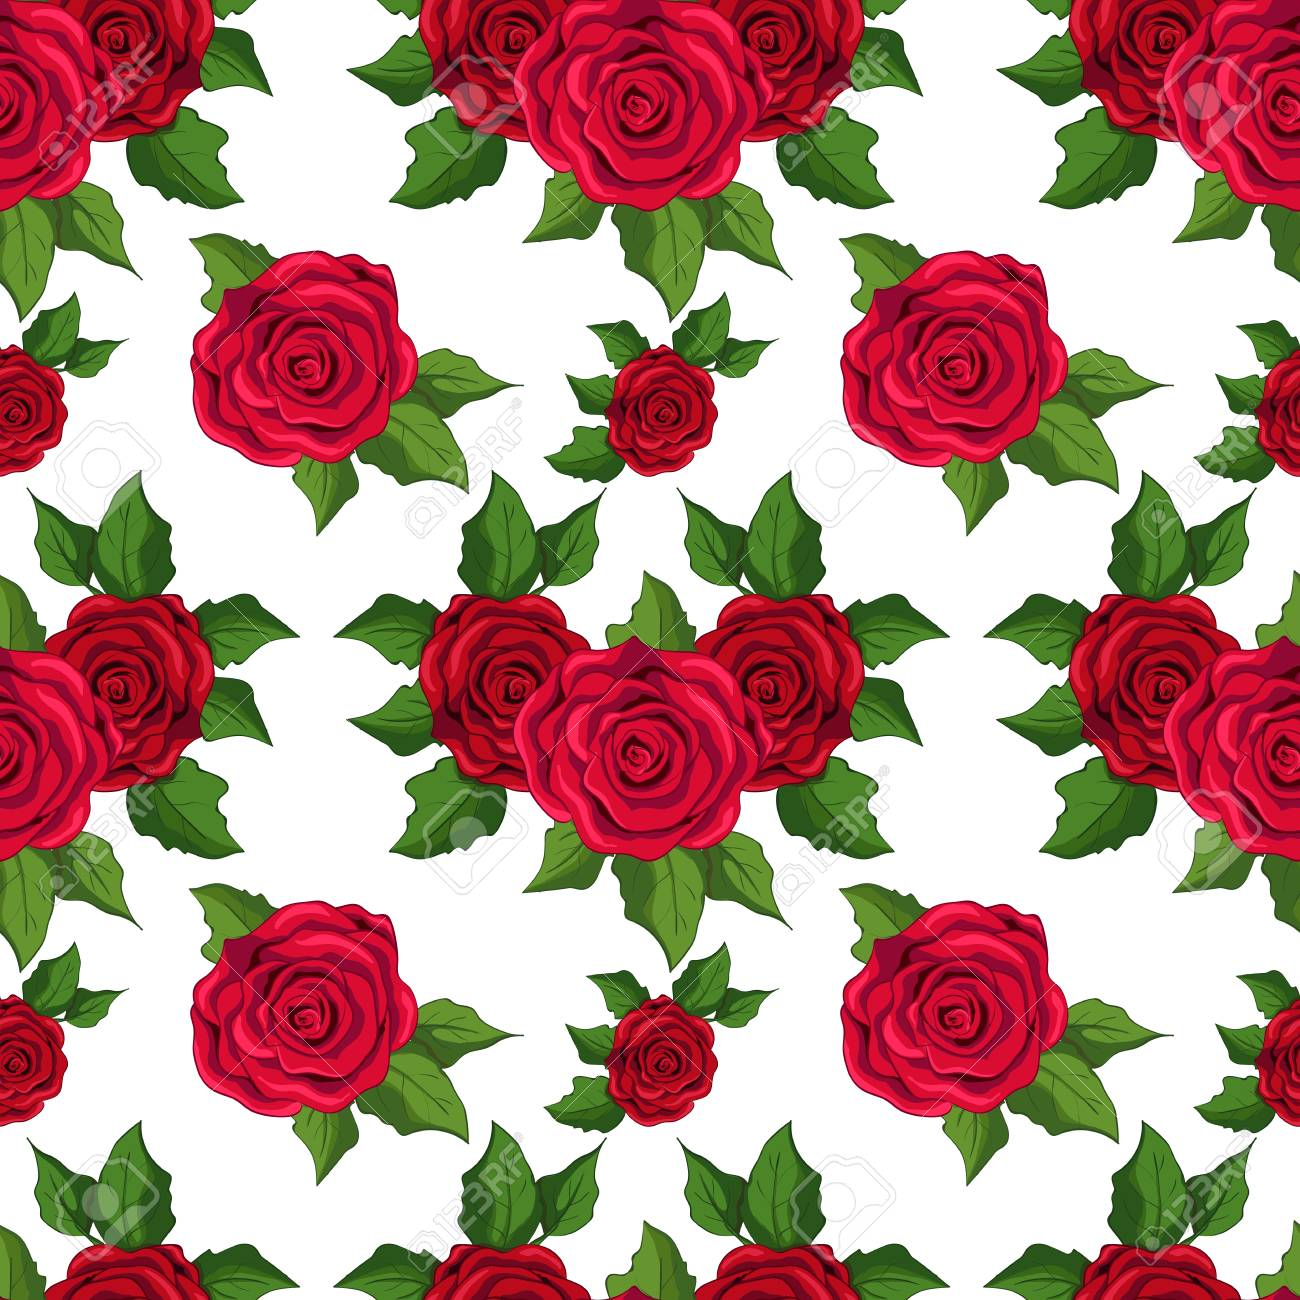 Seamless floral pattern wallpaper with red roses on white seamless floral pattern wallpaper with red roses on white background stock vector 87043879 mightylinksfo